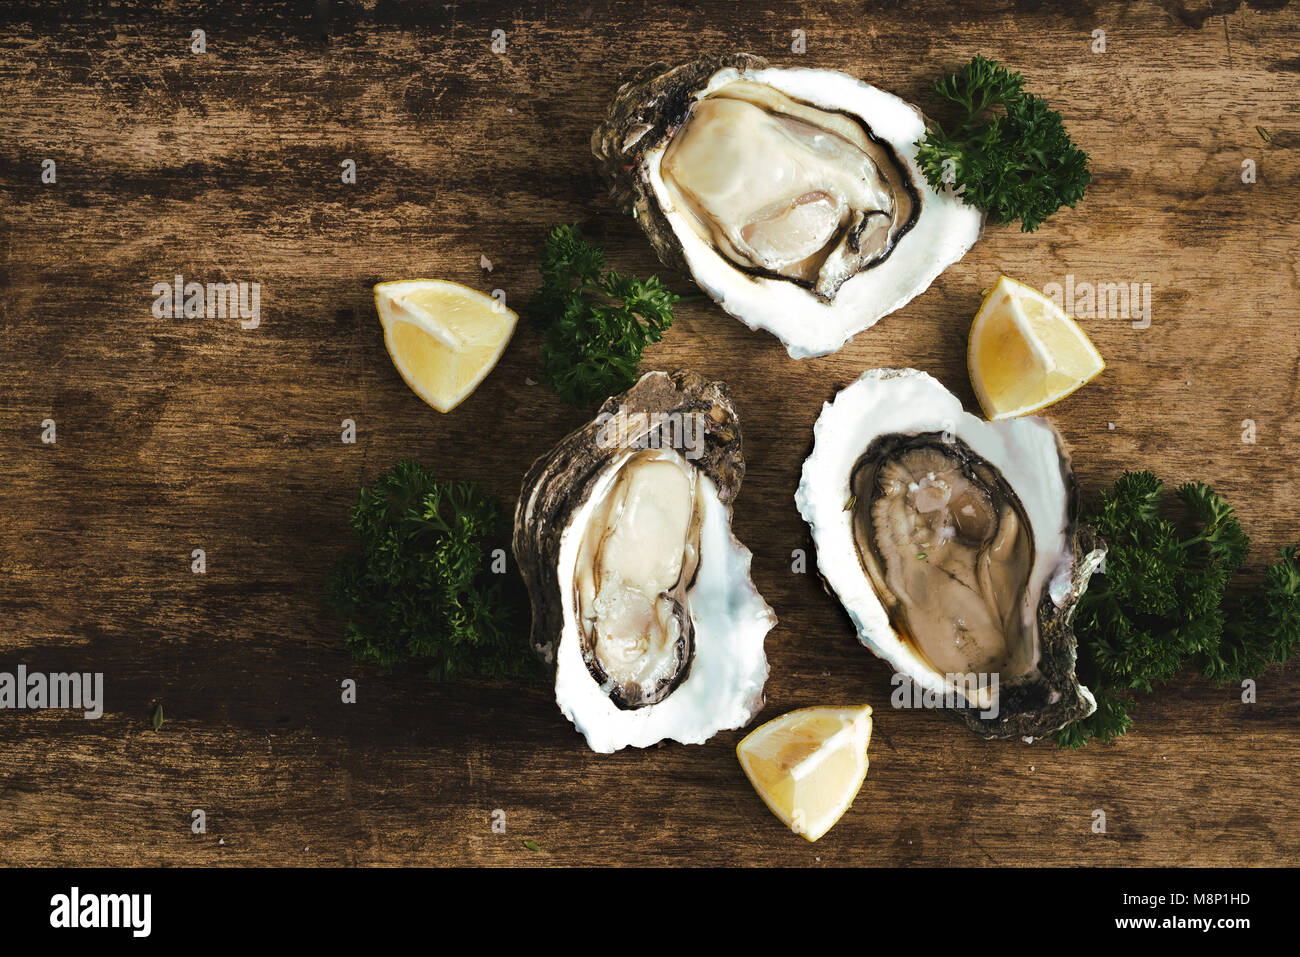 fresh just opened oysters and slice of lemon on rustic wooden background - Stock Image